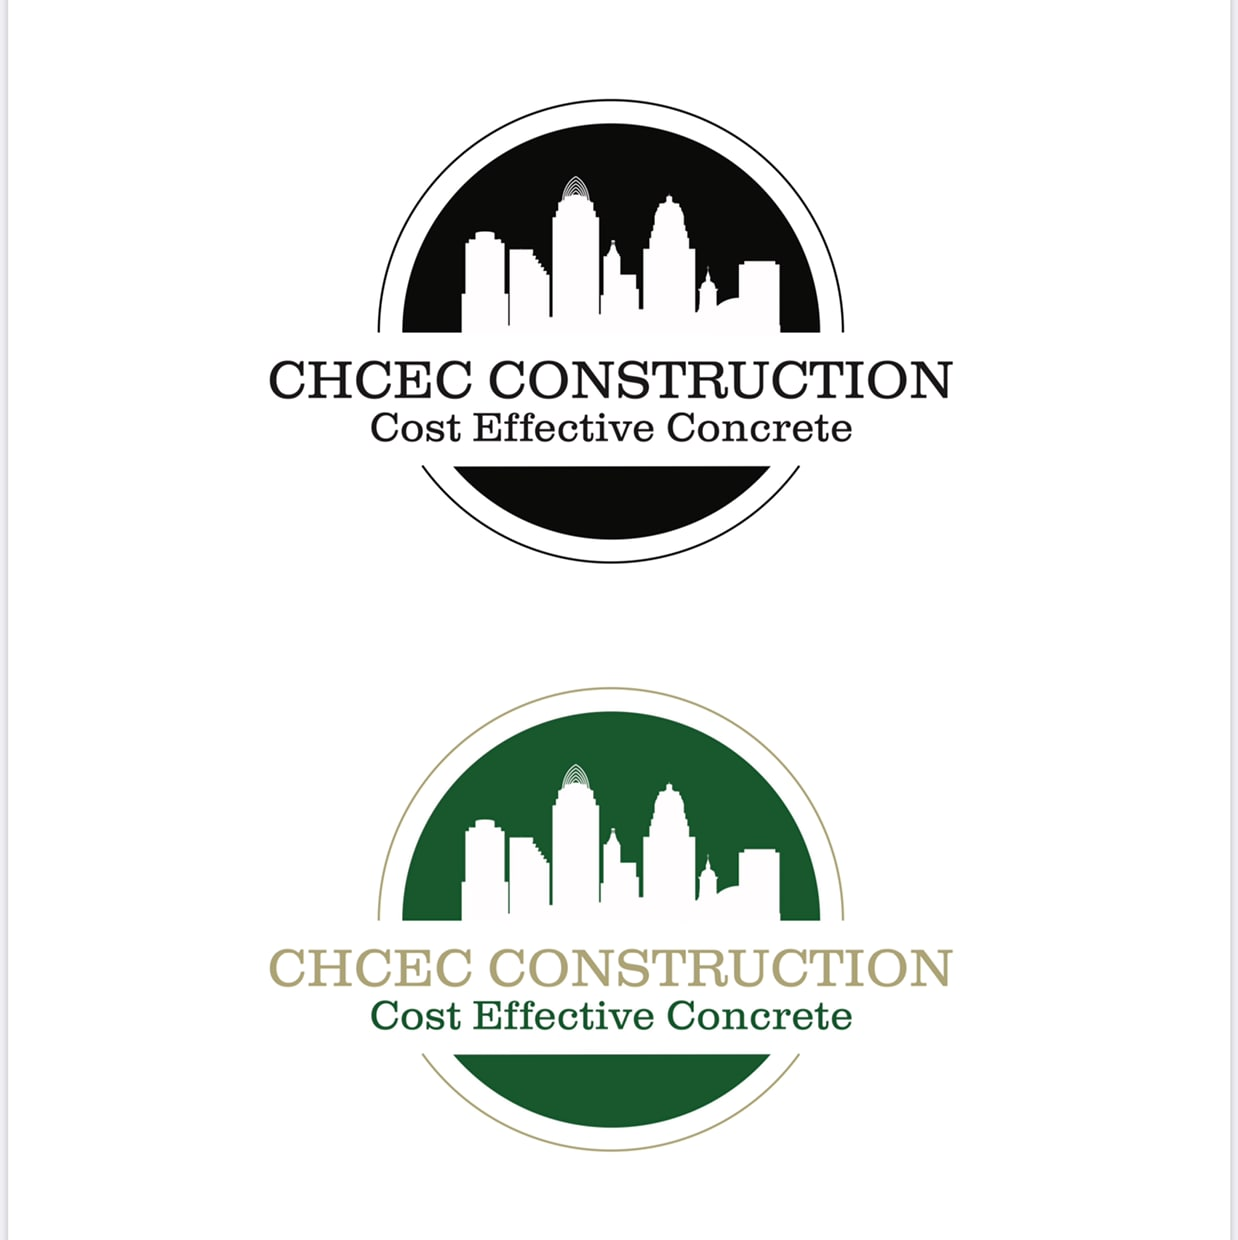 CHCEC Construction Cost Effective Concrete